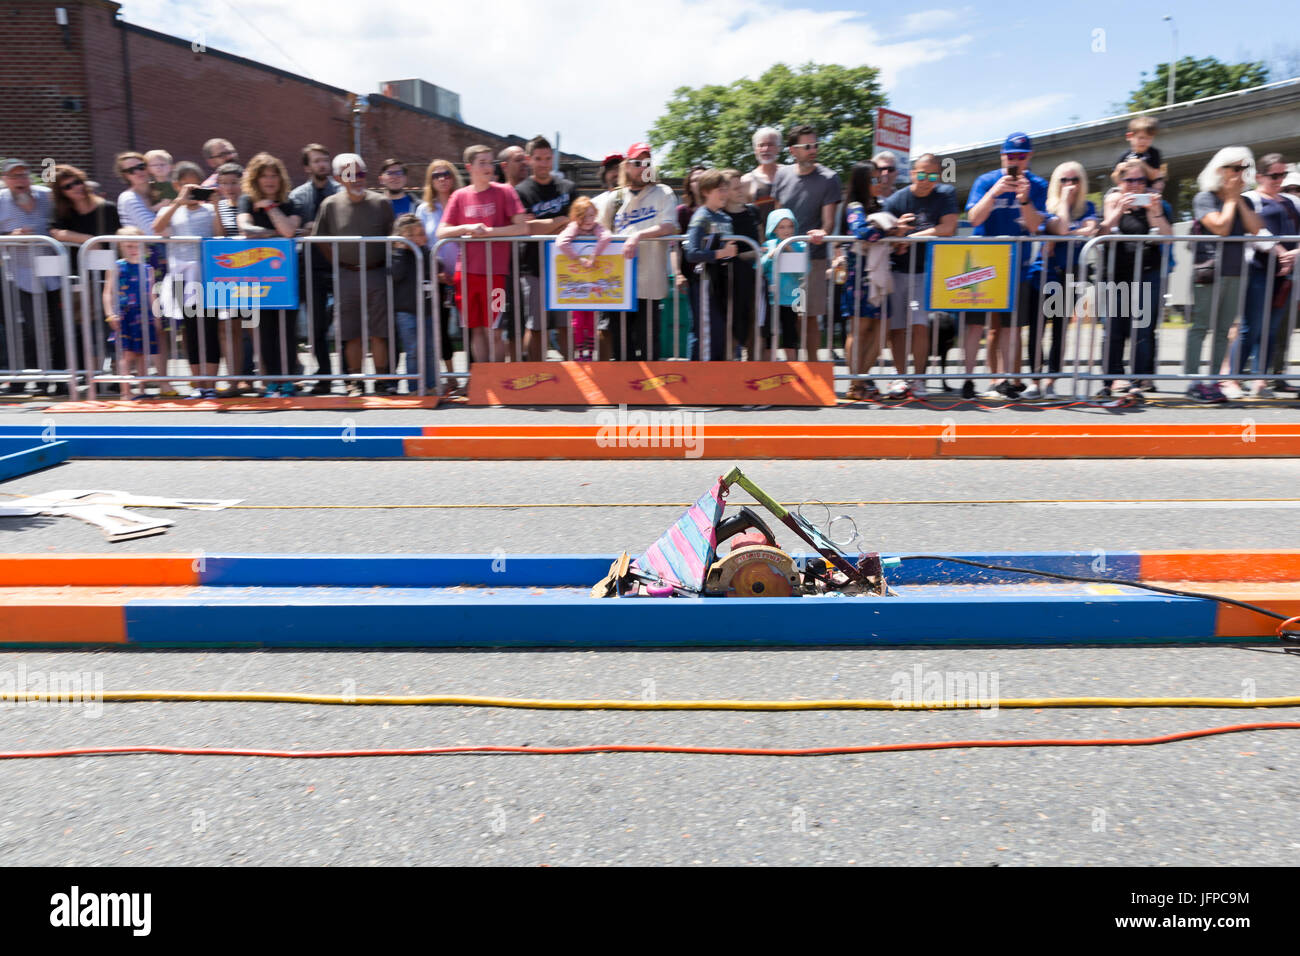 Seattle, Washington: Spectators watching the Power Tool Races at the Georgetown Carnival 2017. Sponsored by the - Stock Image